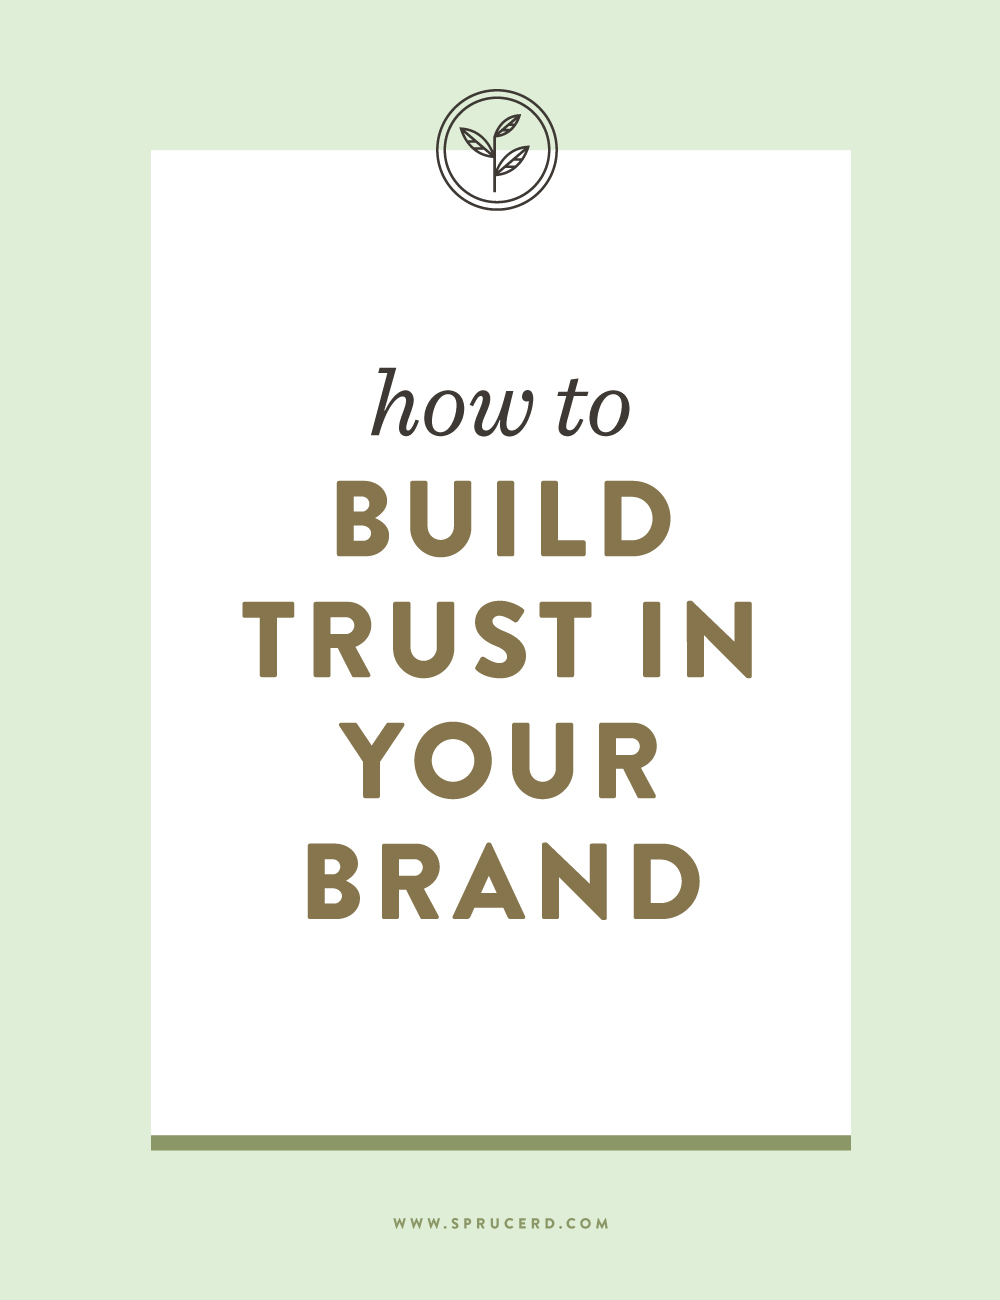 How to build trust in your brand | Good design builds trust, and establishes you as a professional in your field. But how do you go about building that strong first impression, and start getting noticed online? I share a few tips that have helped me build a strong reputation + brand, attracting my ideal clients and readers.